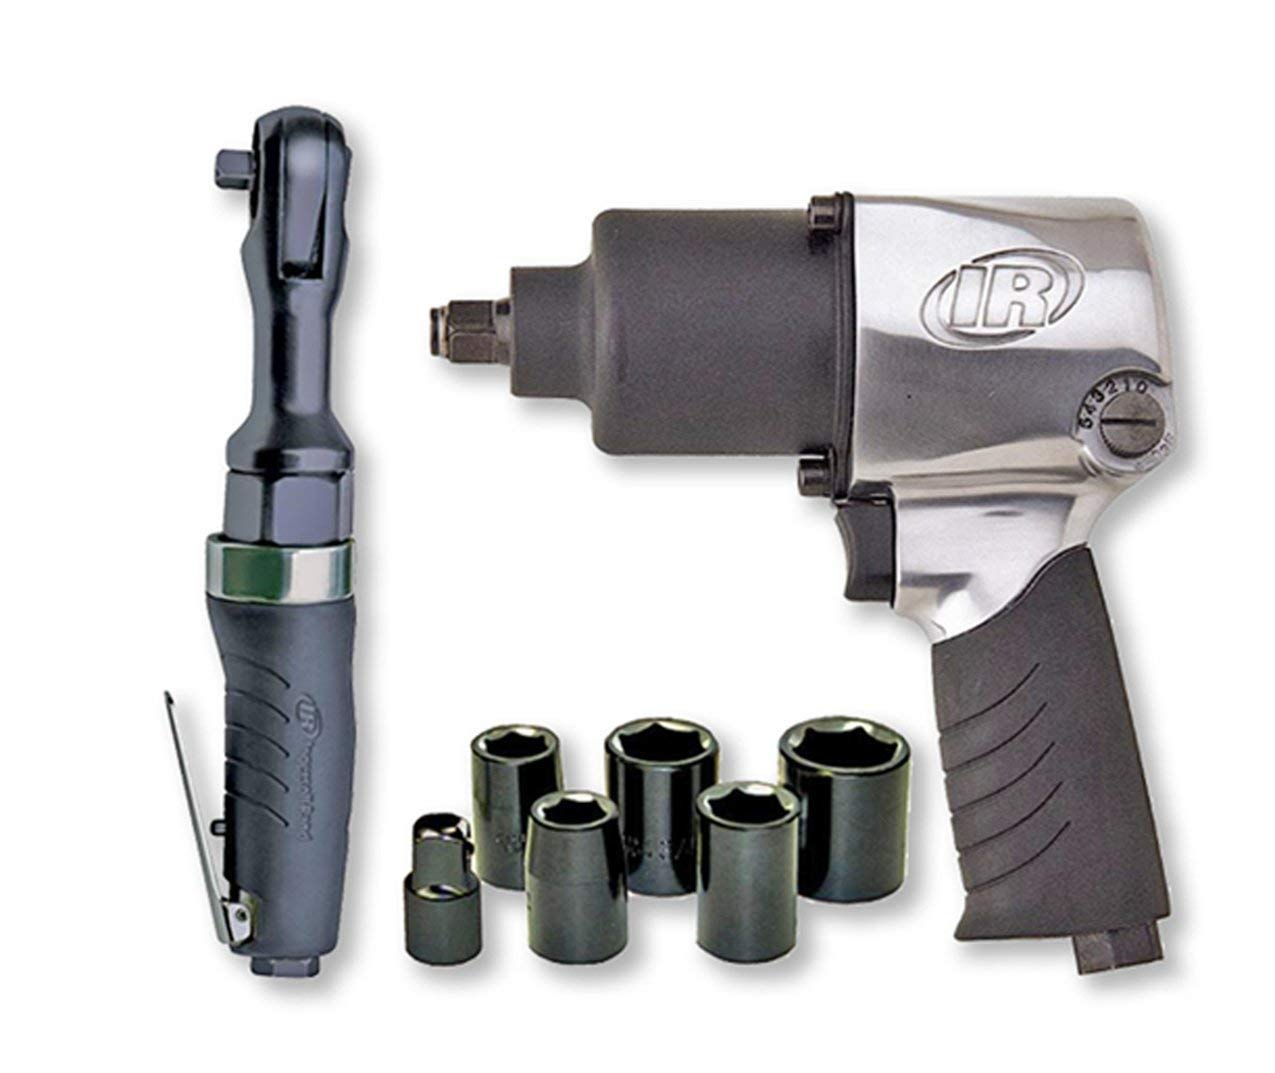 Ingersoll Rand 2317G Edge Series Air Impactool and Ratchet Kit  Black